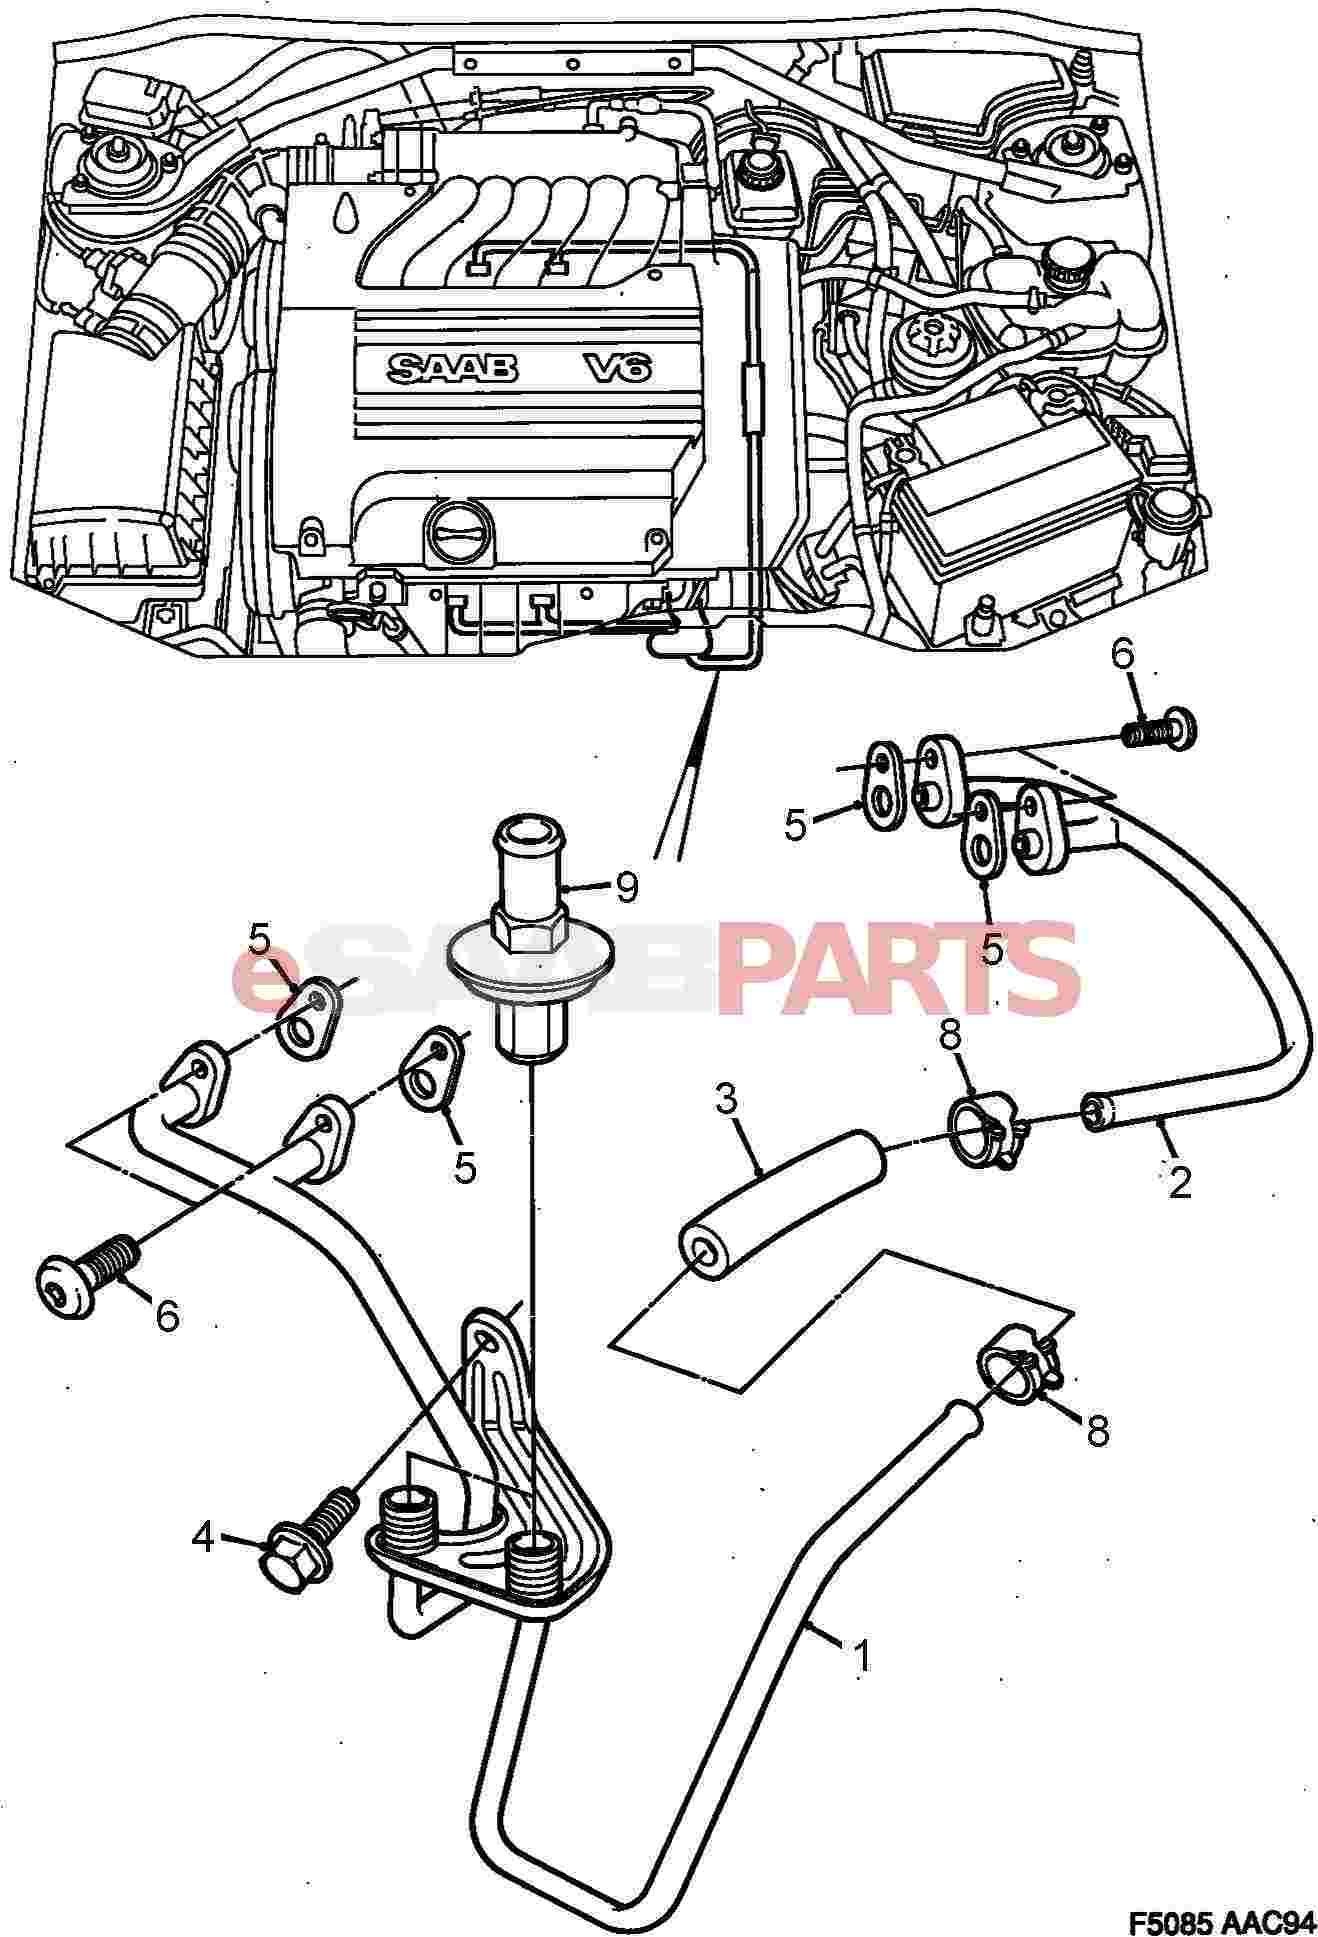 4360269 saab tube genuine saab parts from esaabpartscom With saab kes diagram